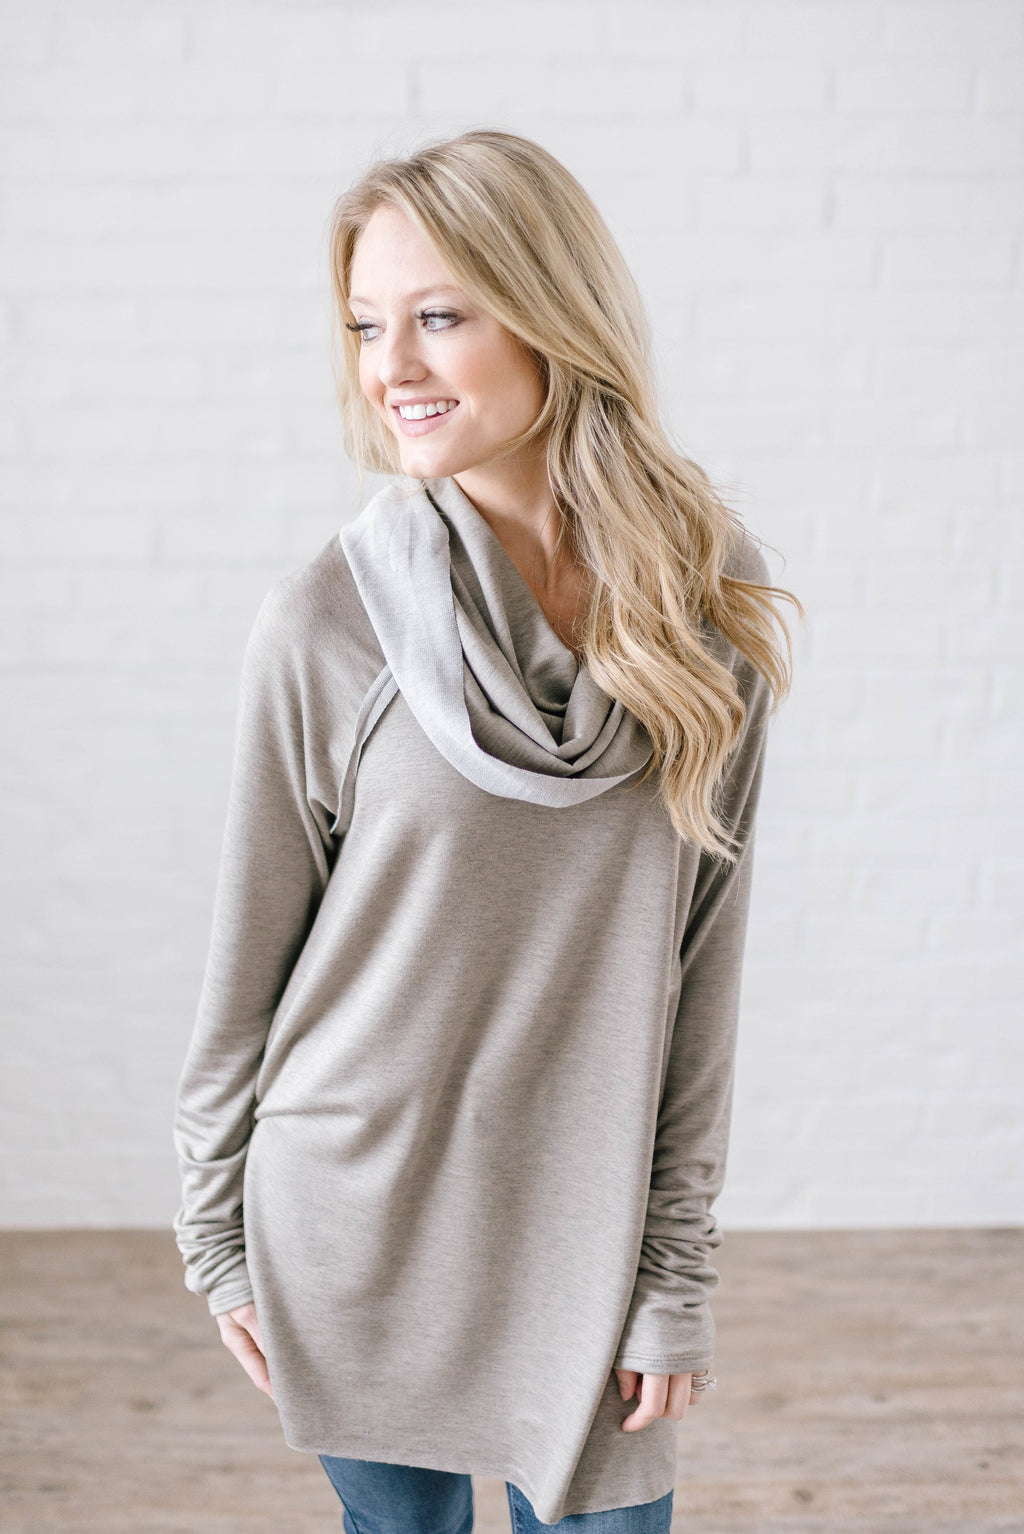 Rainy Day Cowl Neck Tunic in Taupe